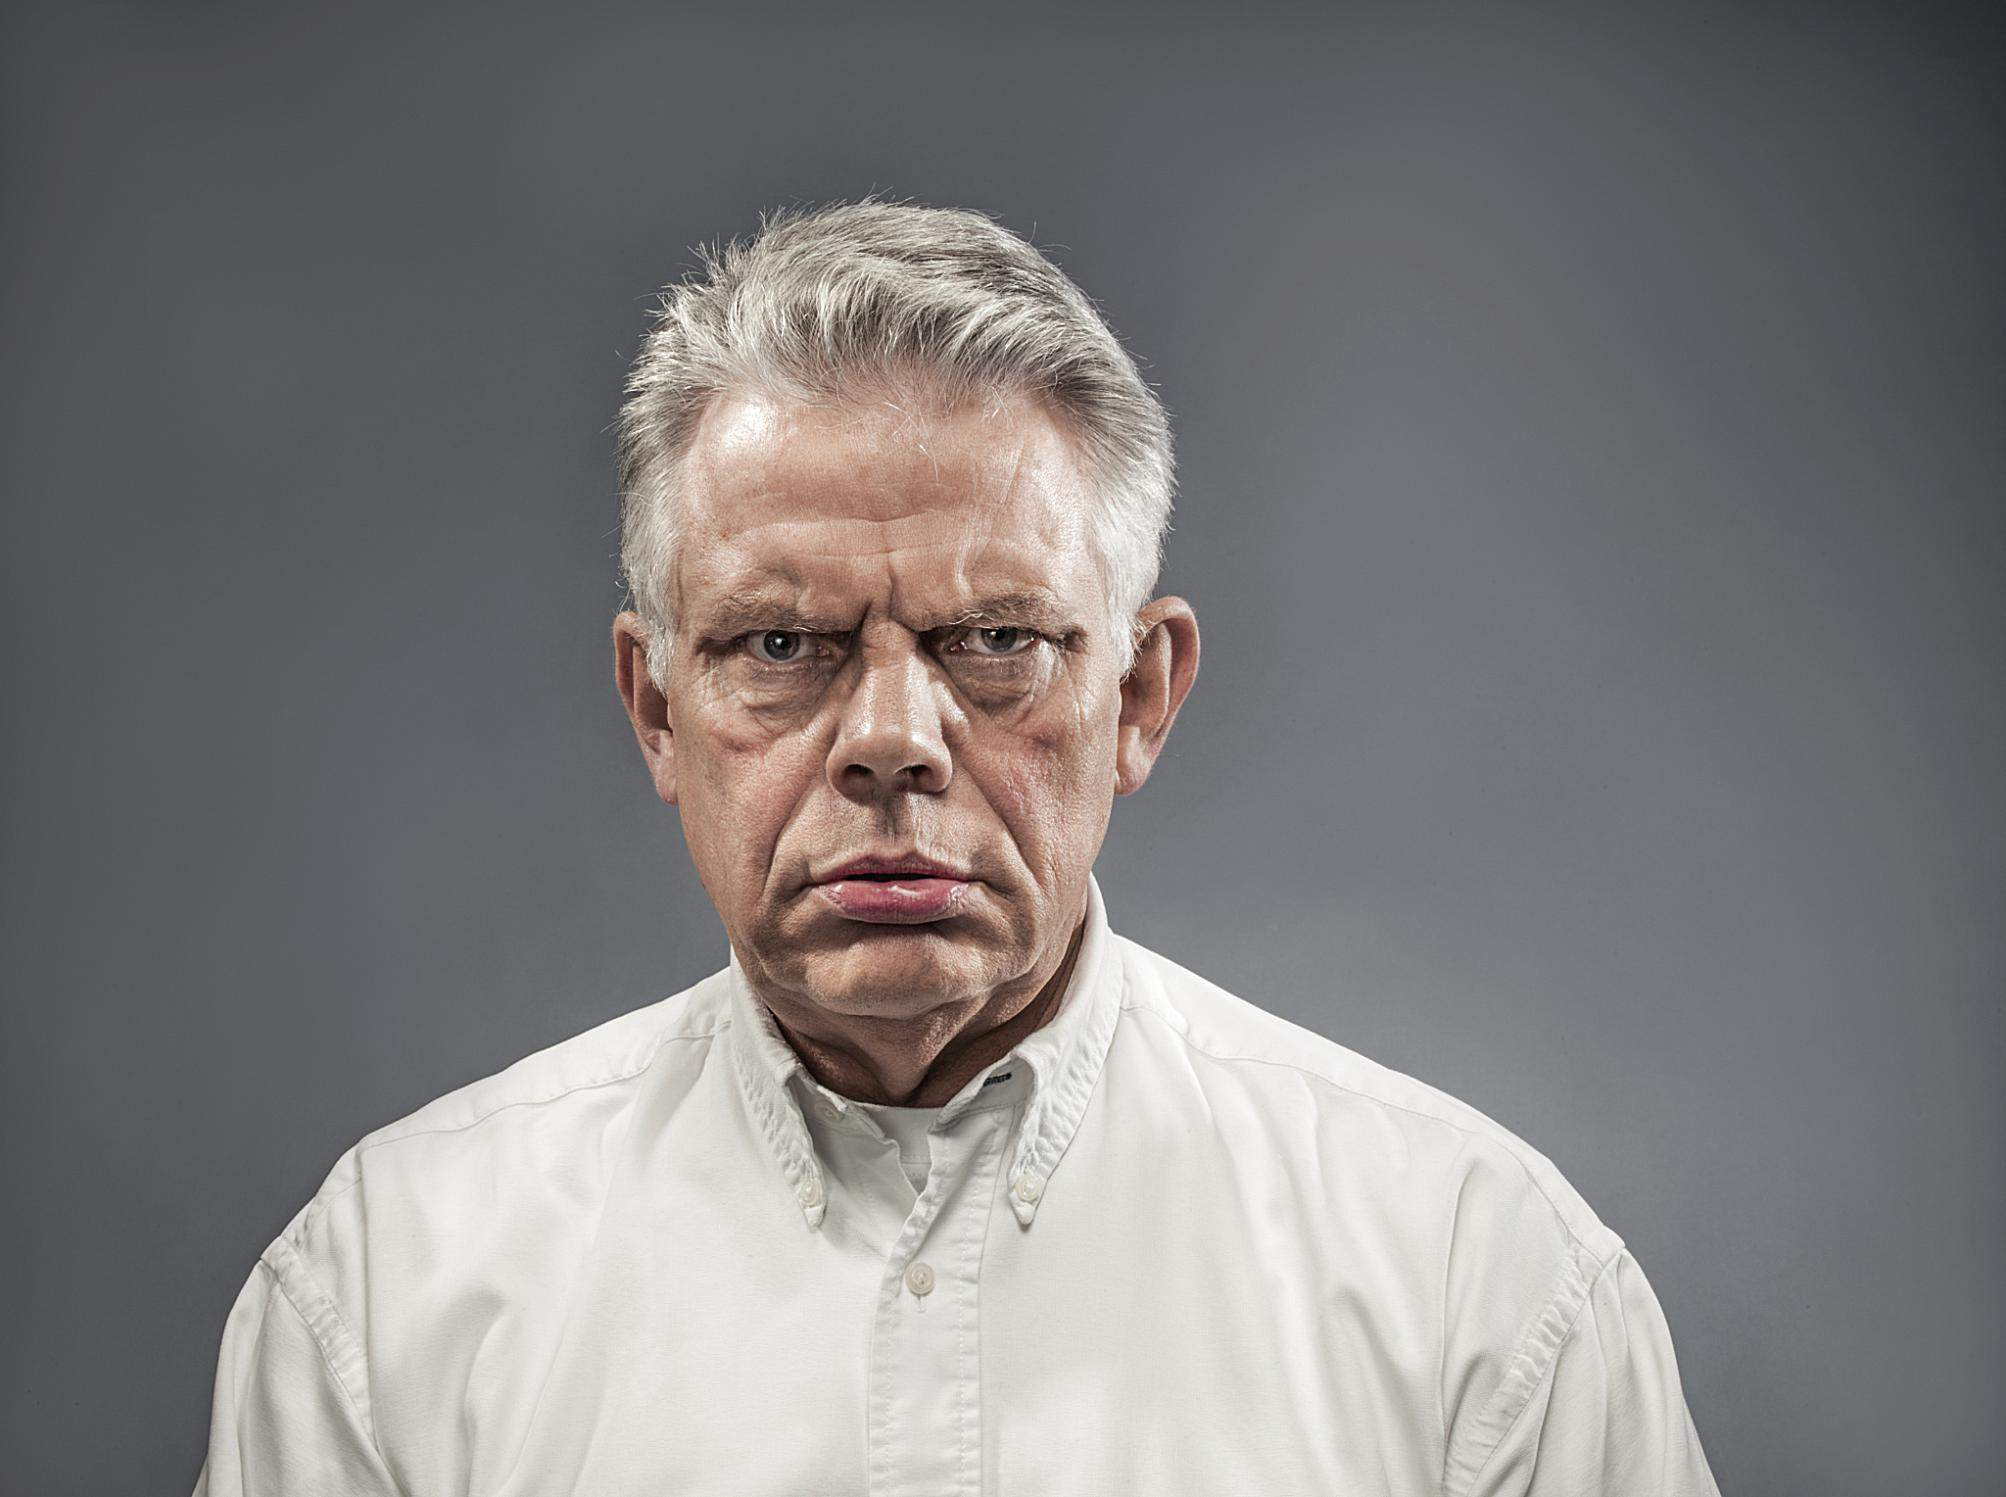 A stern looking man in a white shirt